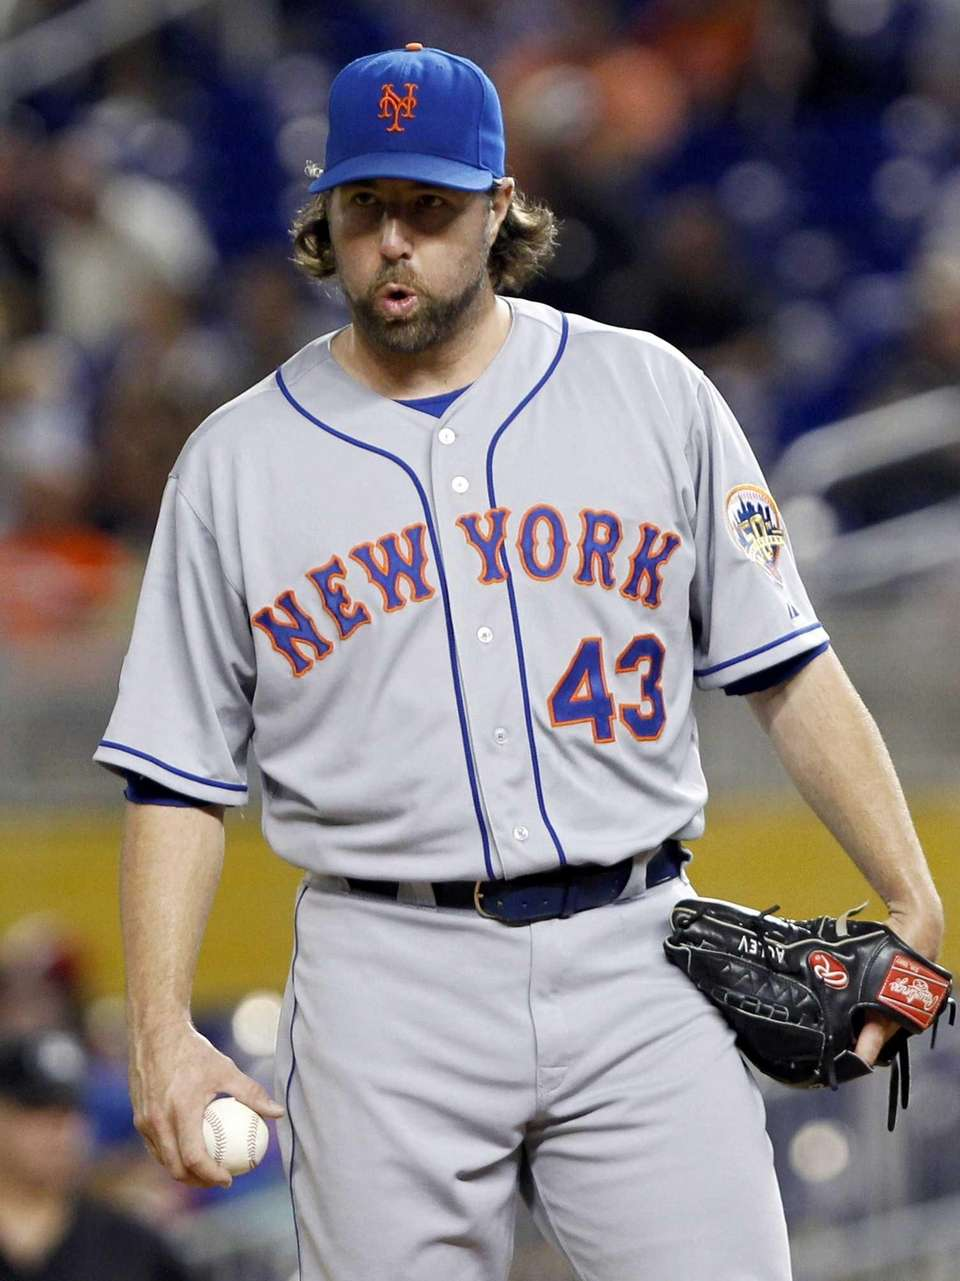 R.A. Dickey prepares to pitch after the Miami